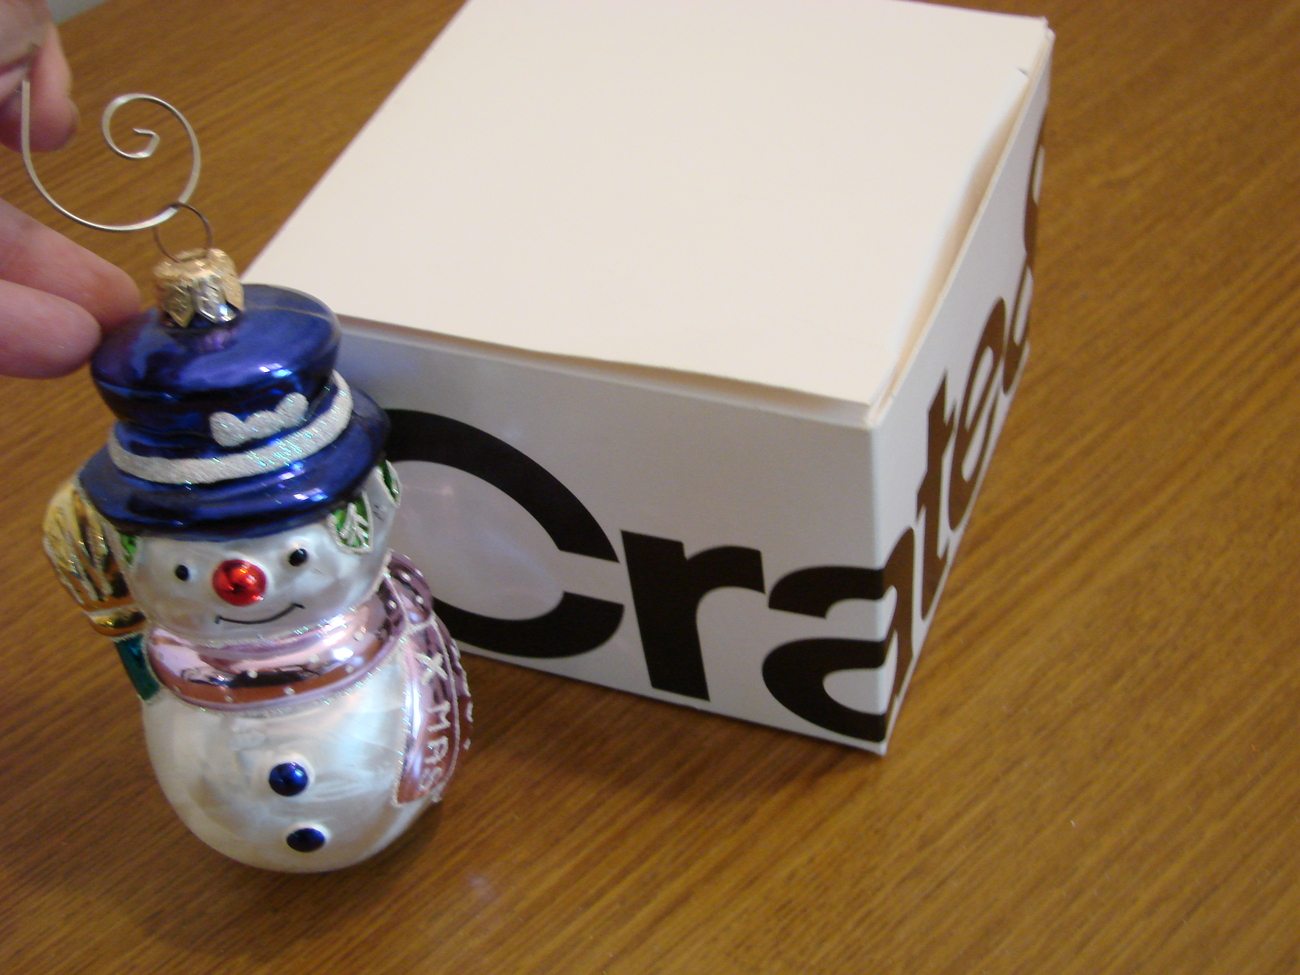 Blown Glass Xmas 2001 Snowman Ornament from Poland image 4